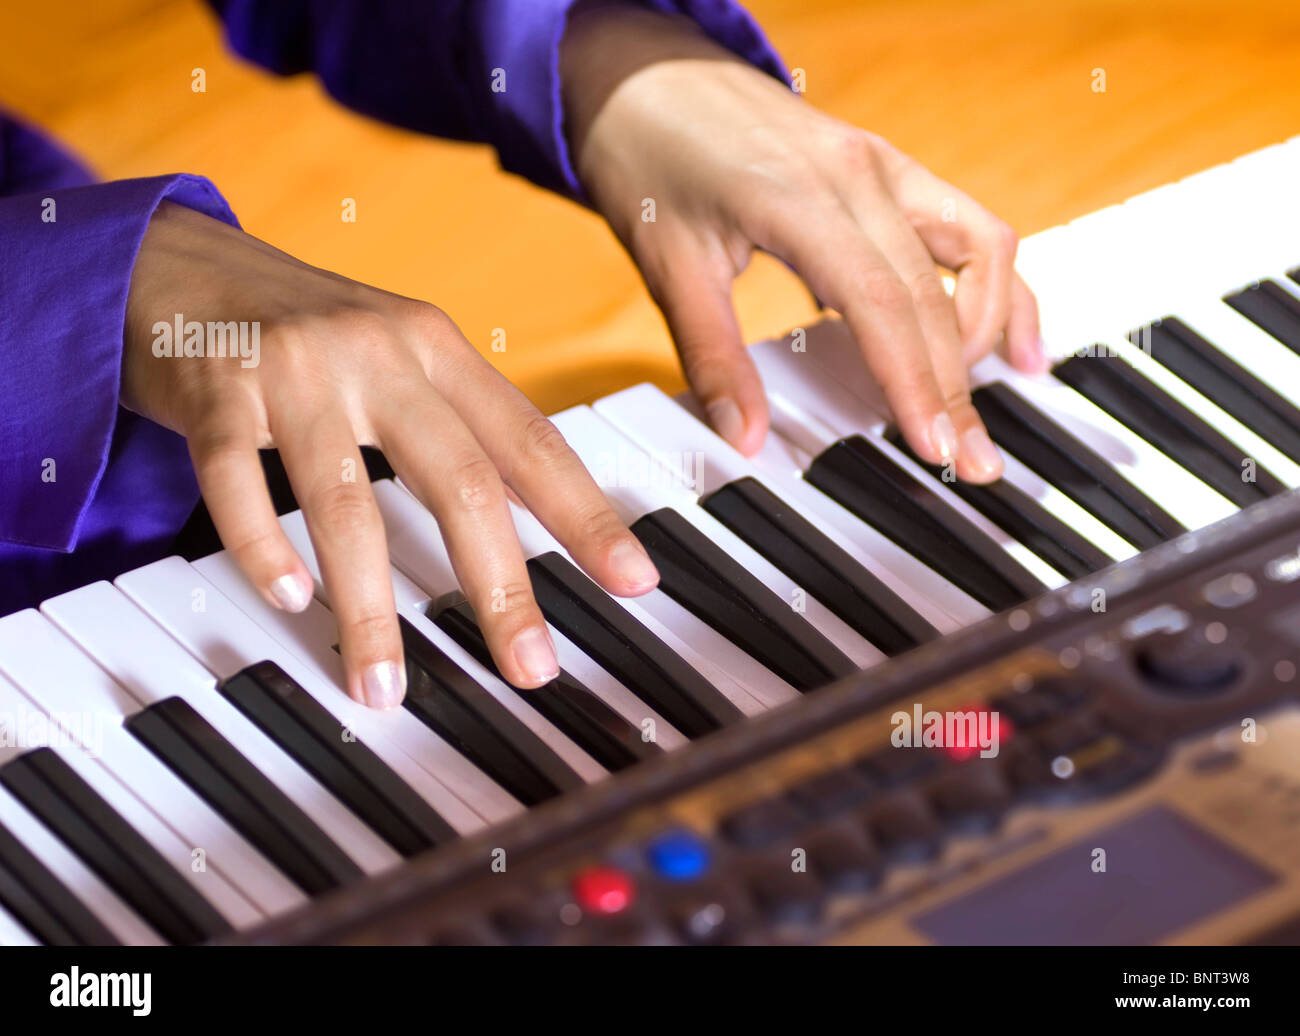 hands of pianist that plays the modern sequencer - Stock Image